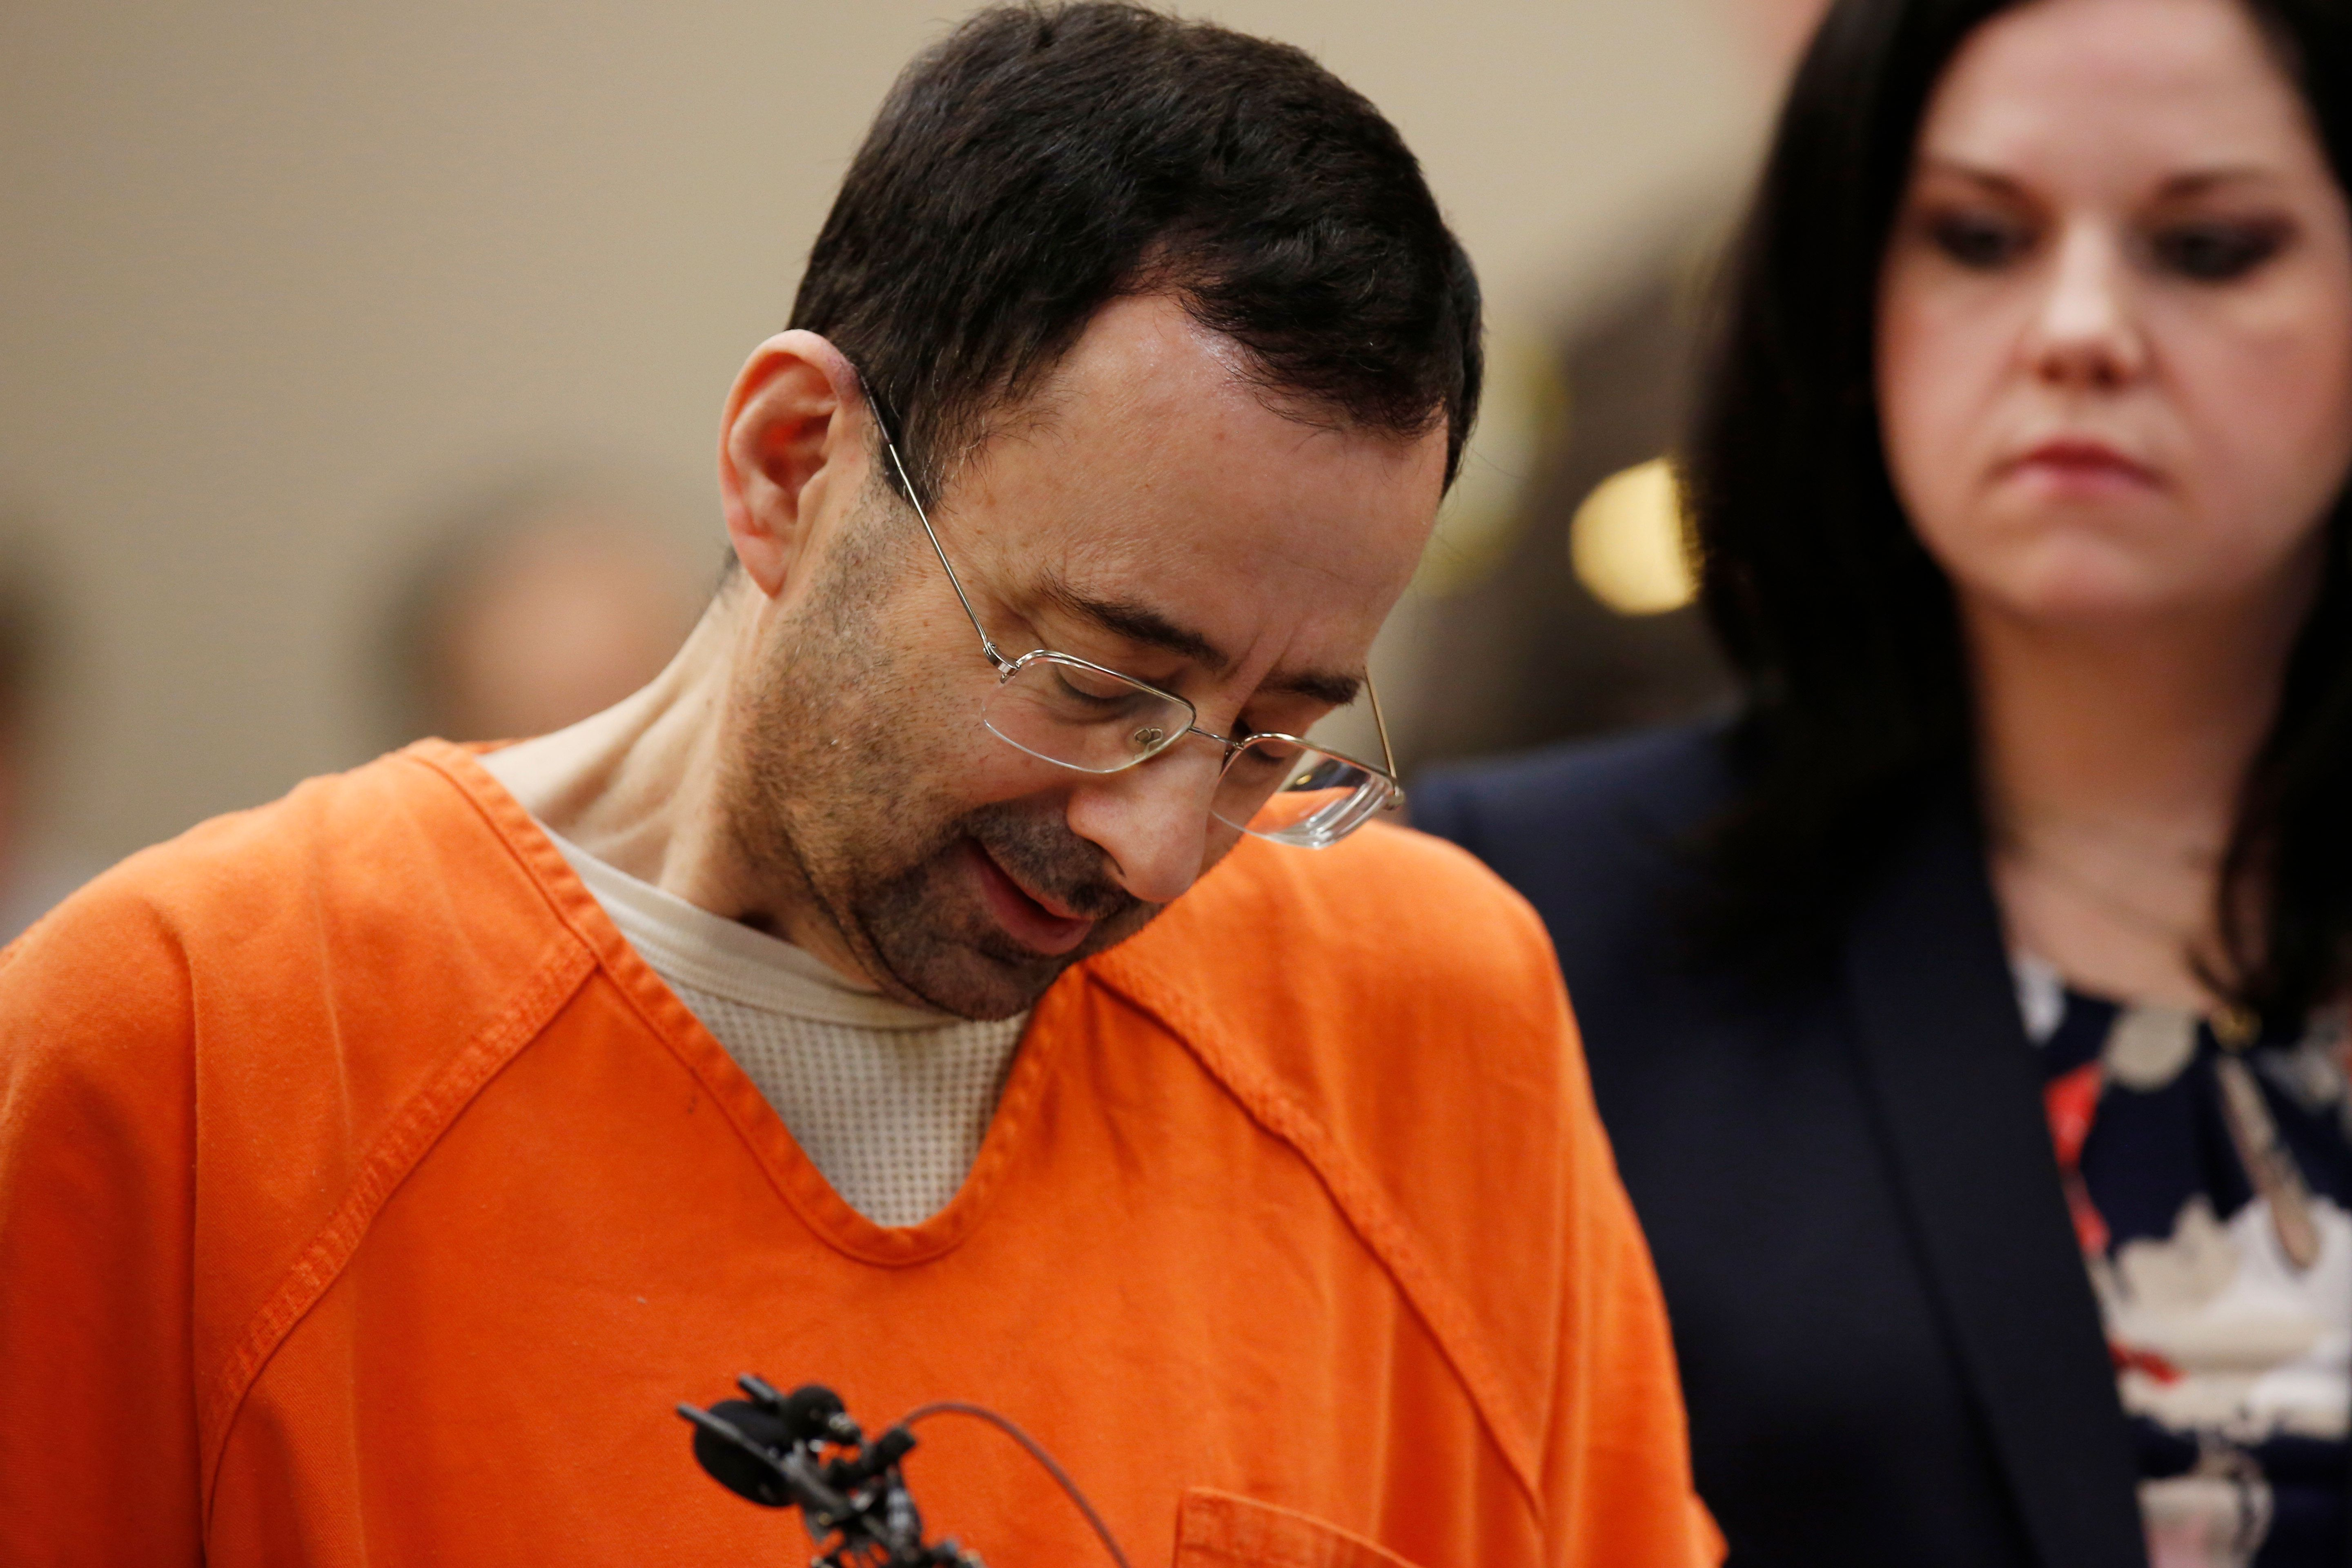 Former Michigan State University and USA Gymnastics doctor Larry Nassar (L) reacts to defense attorney Shannon Smith (R) reading the charges he pled to in Ingham County Circuit Court on November 22, 2017 in Lansing, Michigan. Former USA Gymnastics team doctor Lawrence (Larry) Nassar, accused of molesting dozens of female athletes over several decades, on Wednesday pleaded guilty to multiple counts of criminal sexual conduct. Nassar -- who was involved with USA Gymnastics for nearly three decades and worked with the country's gymnasts at four separate Olympic Games -- could face at least 25 years in prison on the charges brought in Michigan.  / AFP PHOTO / JEFF KOWALSKY        (Photo credit should read JEFF KOWALSKY/AFP/Getty Images)